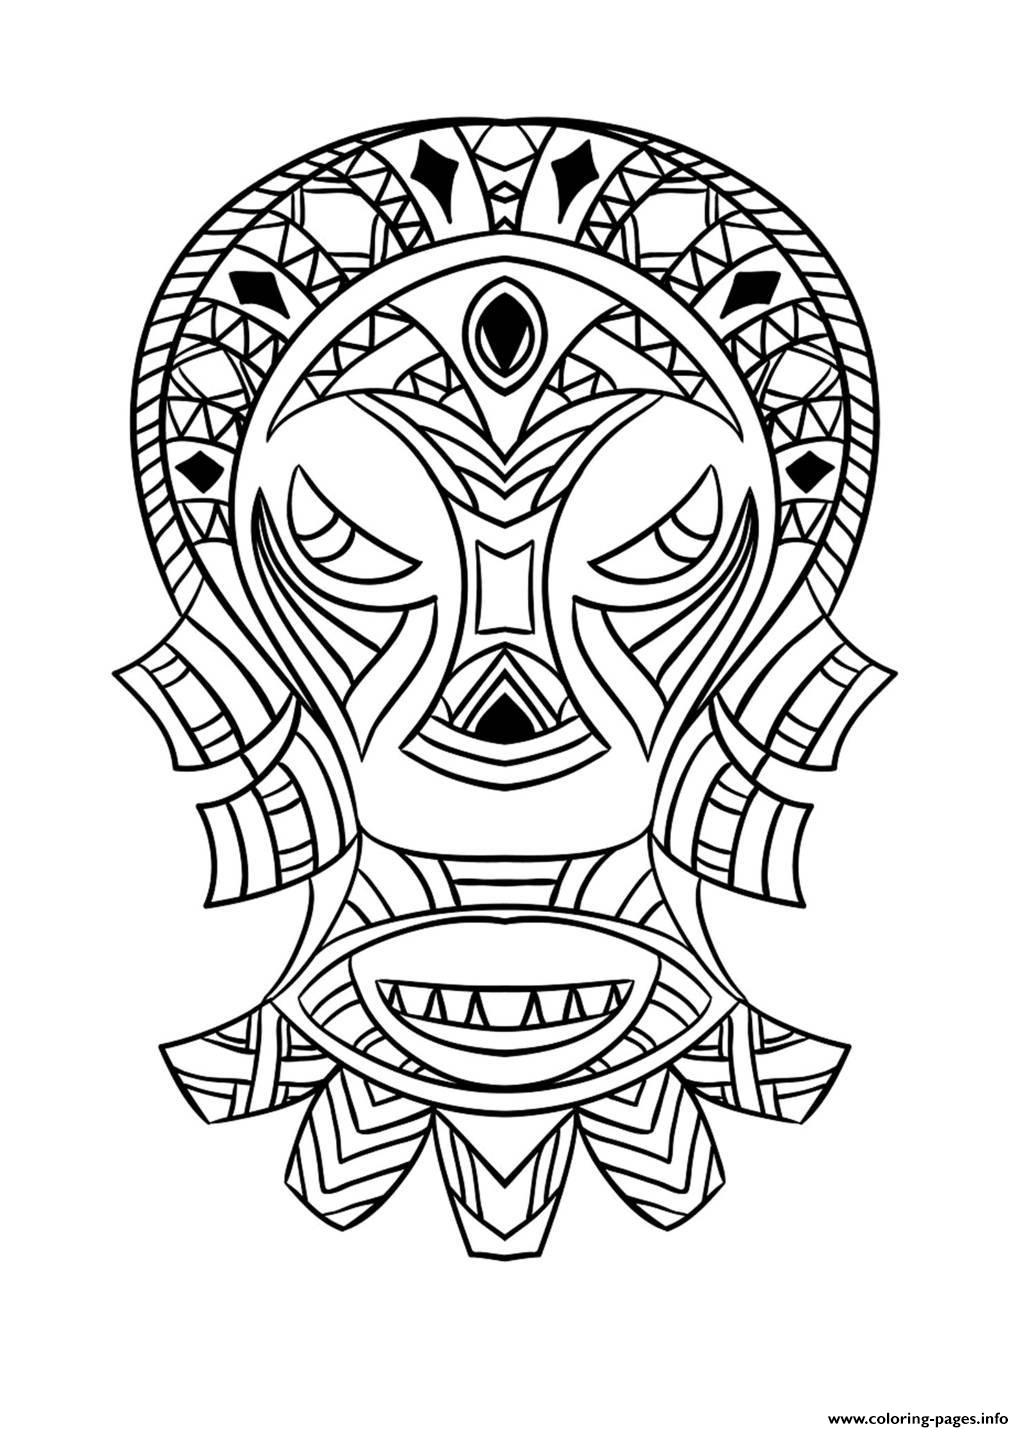 coloring pages africa - photo#16